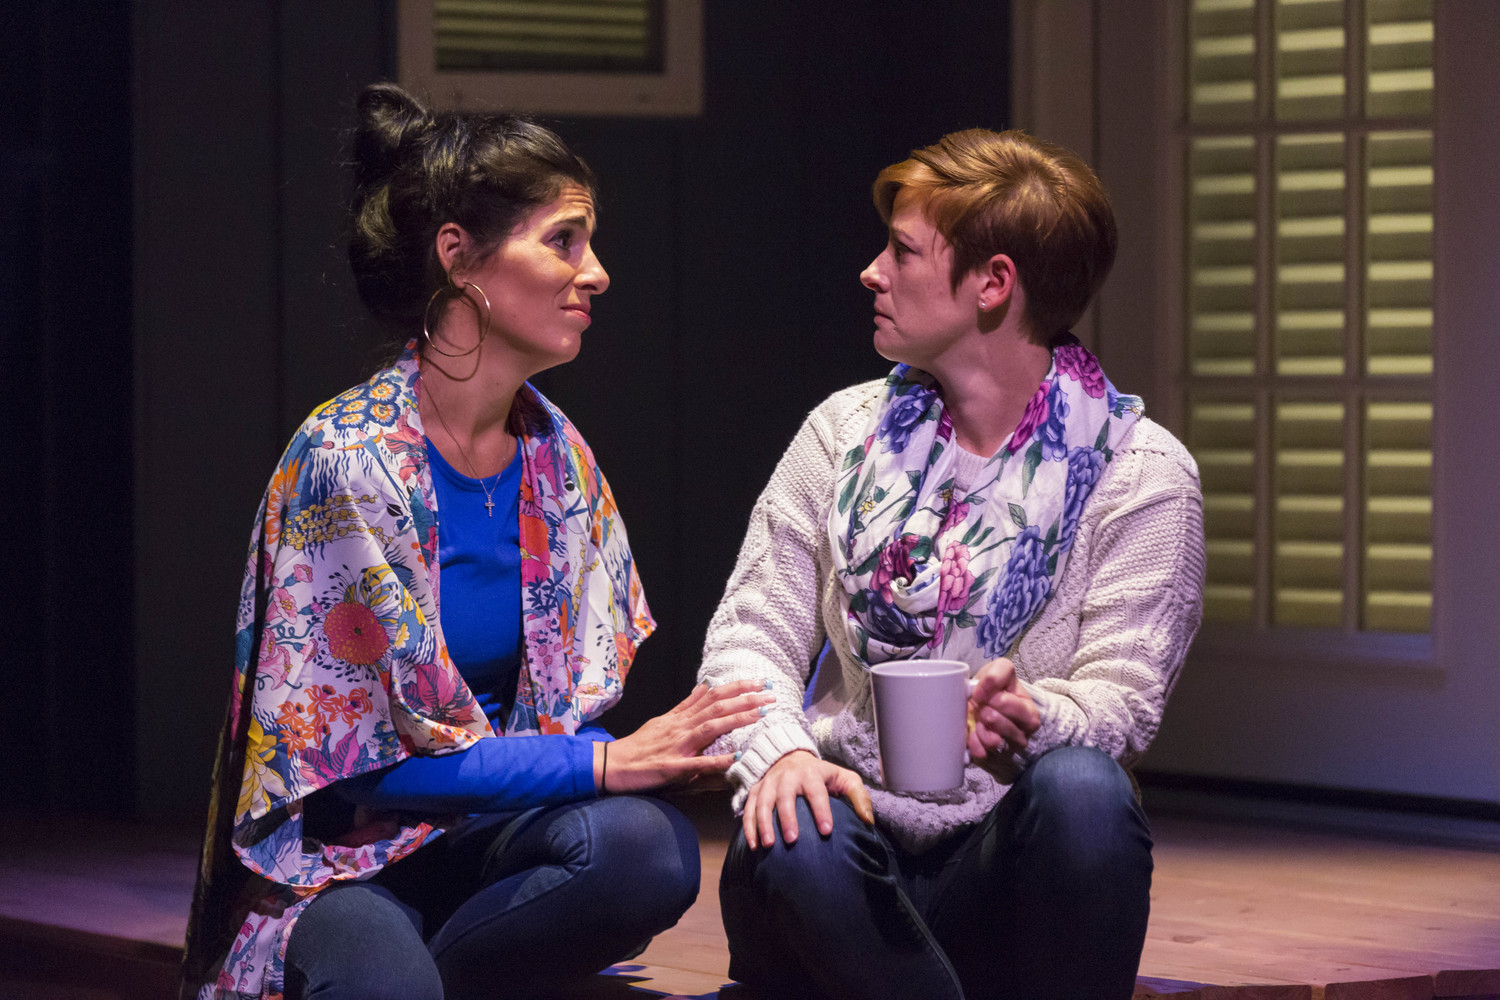 BWW Review: CRY IT OUT at Phoenix Theatre